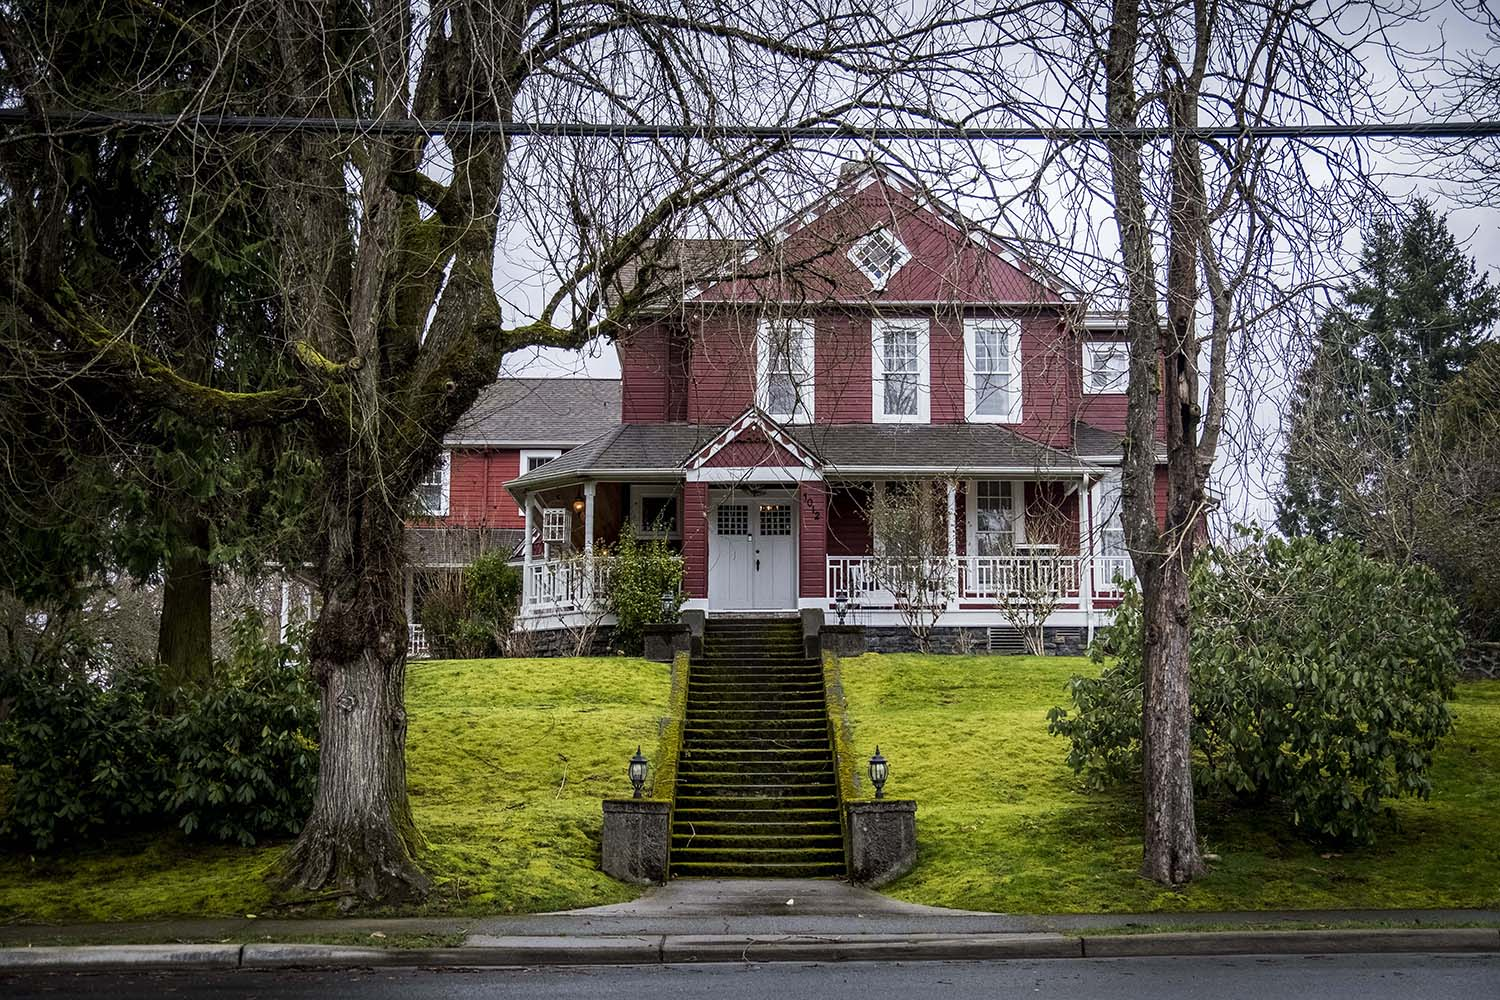 "<p>Billiard Room? Check. Special Pet entrance to master suite? Check. Stained Glass? It's everywhere! Built in 1888, this 13,000 square foot Snohomish home is a 9 bed/6.5 bath property loaded with character and boasts three staircases, hidden rooms, a wrap-around porch, dumbwaiter, multiple ballrooms, computer server room, home theater and a speakeasy-style basement bar with a see through table over the home's original well.{&nbsp;} It's listed for $2,900,000 by Windermere's Dena VanDuine, more info{&nbsp;}<a  href=""http://denavanduine.withwre.com/listing/WA/Snohomish/1012-Fourth-Street-98290/113396442"" target=""_blank"" title=""http://denavanduine.withwre.com/listing/WA/Snohomish/1012-Fourth-Street-98290/113396442"">online</a>. (Image: John Prentice / Seattle Refined)</p>"